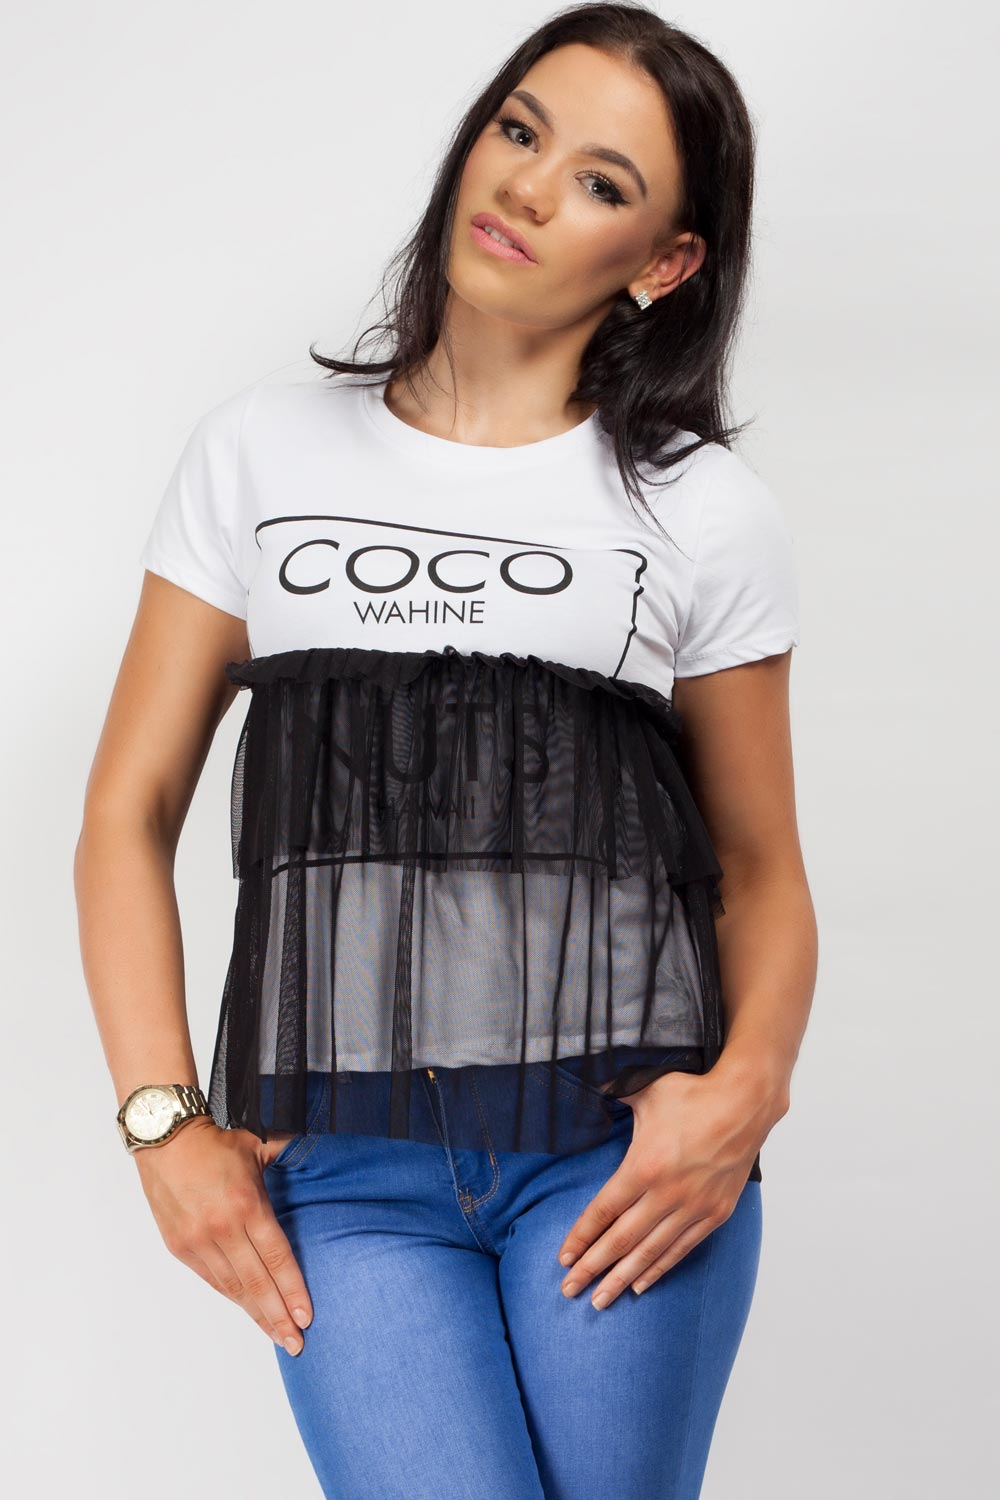 coco slogan t shirt on sale uk